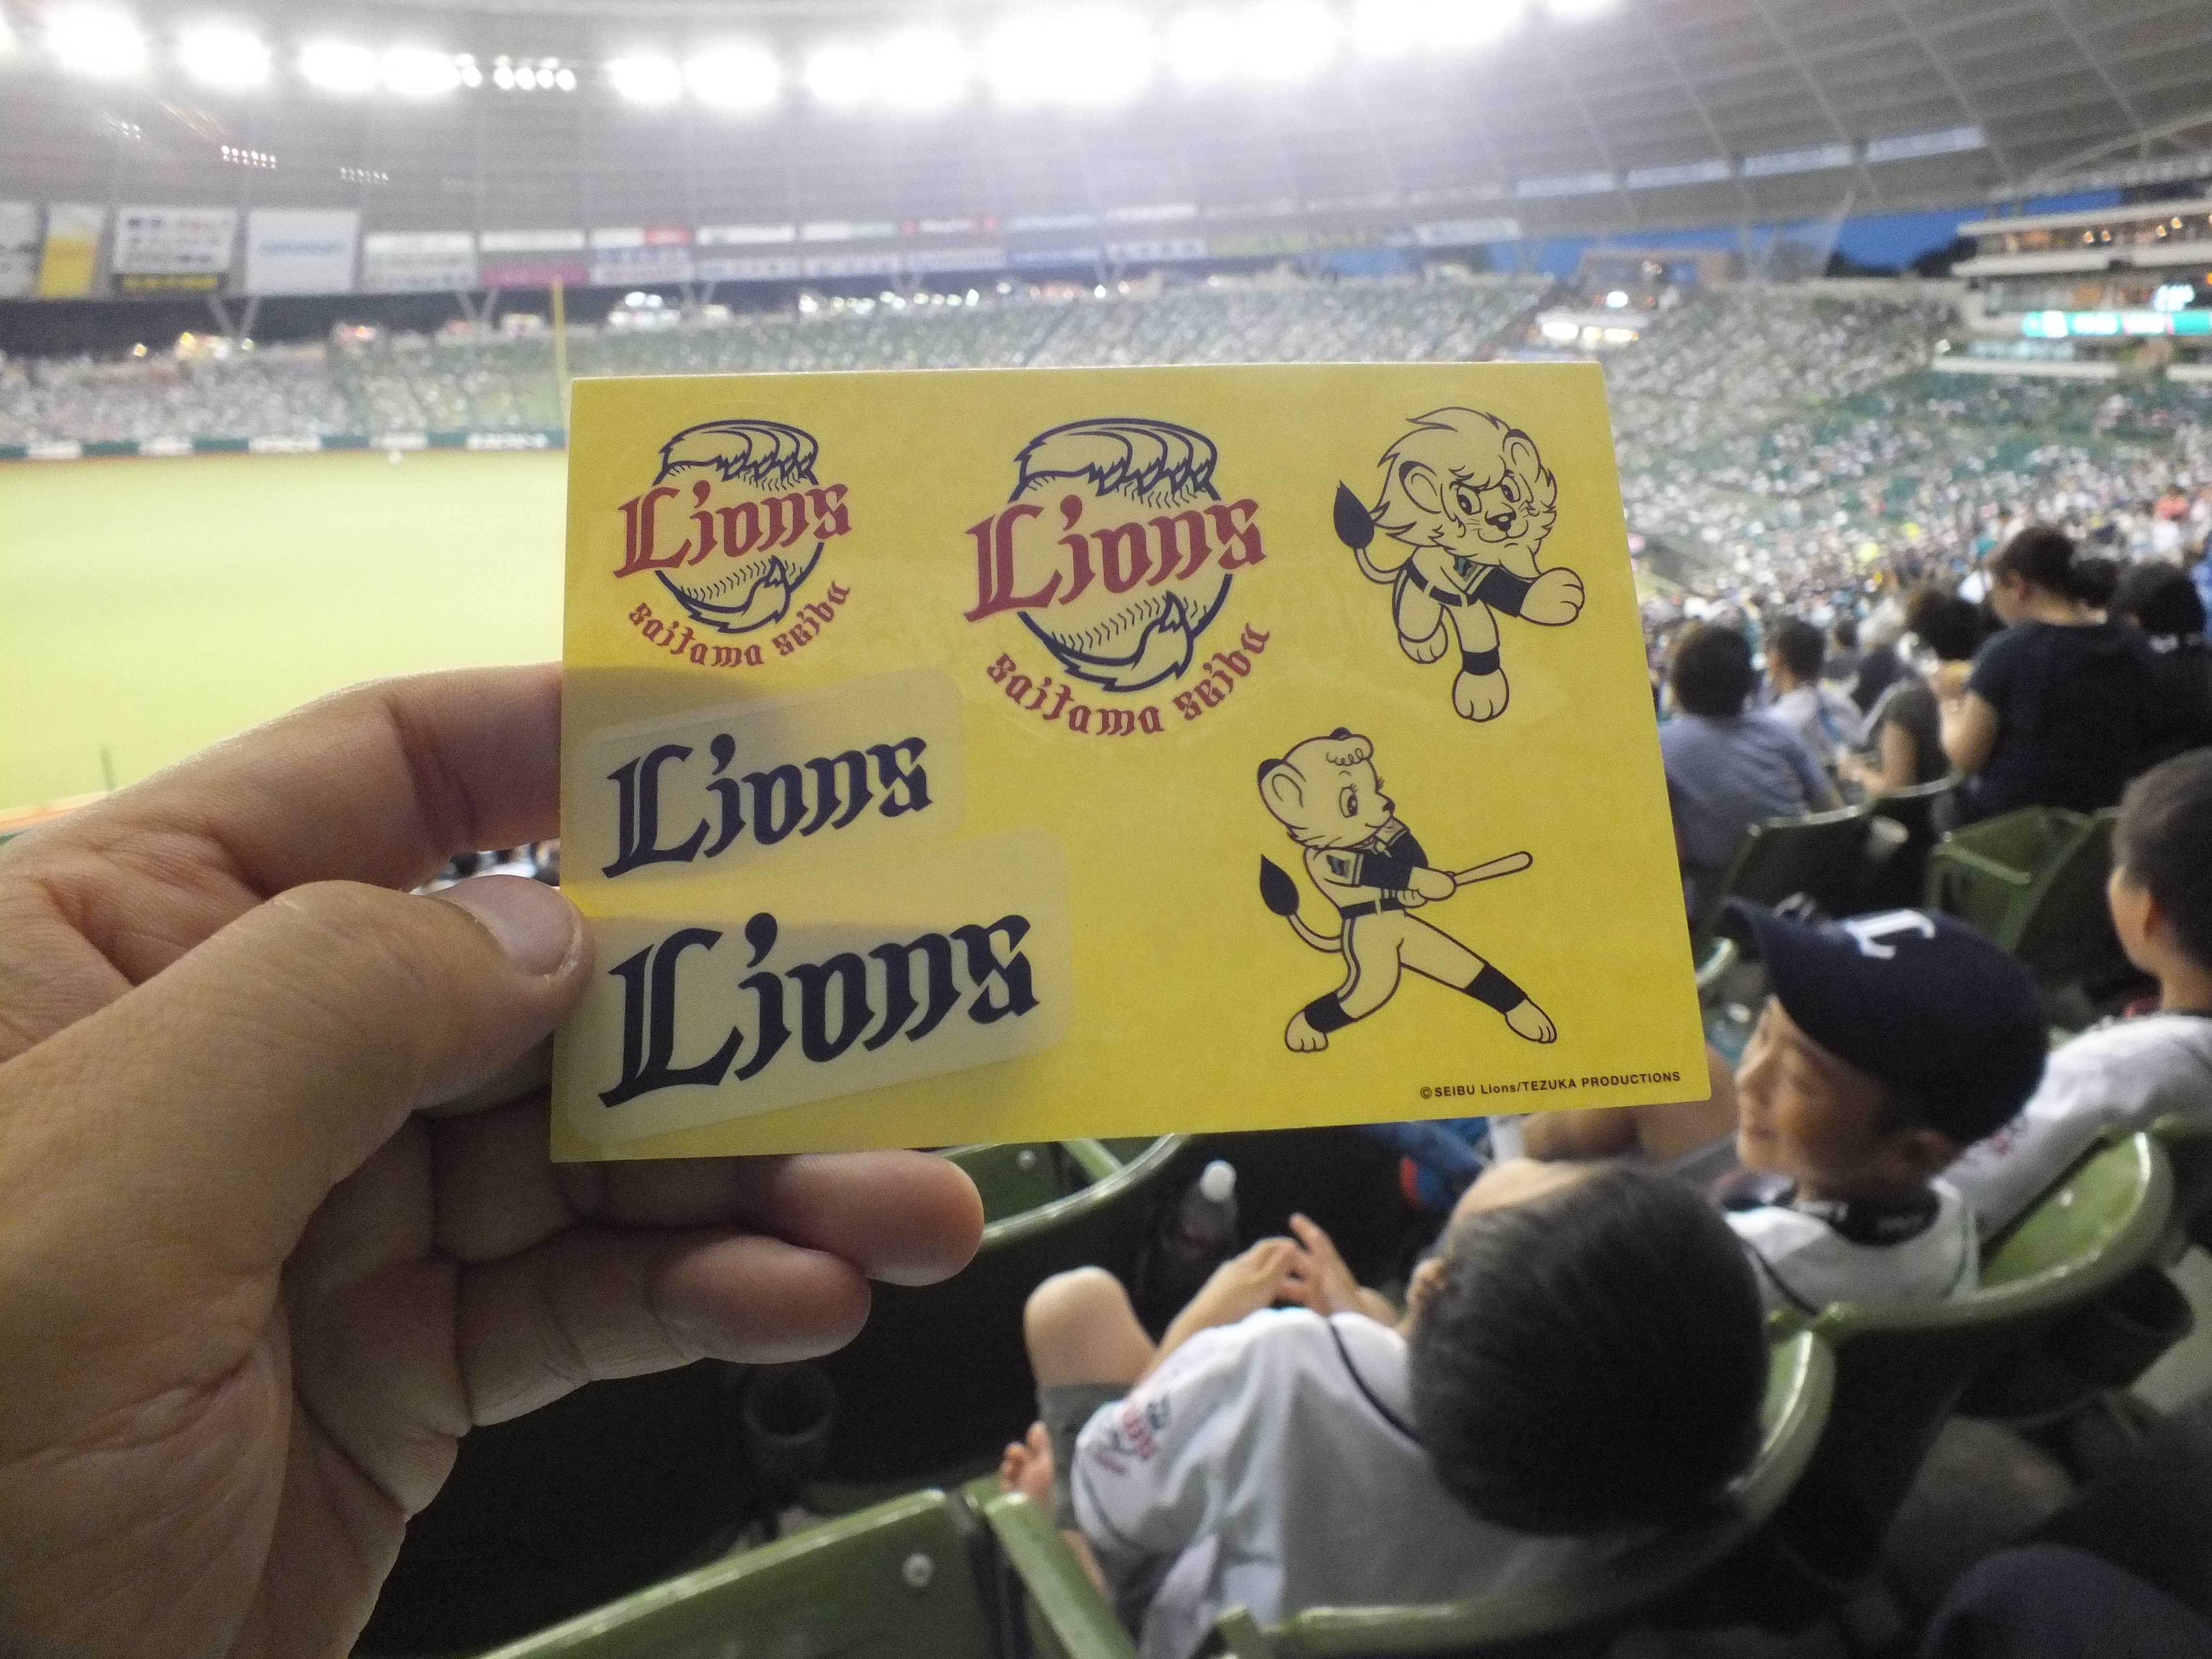 Lions Baseball for the World のシール